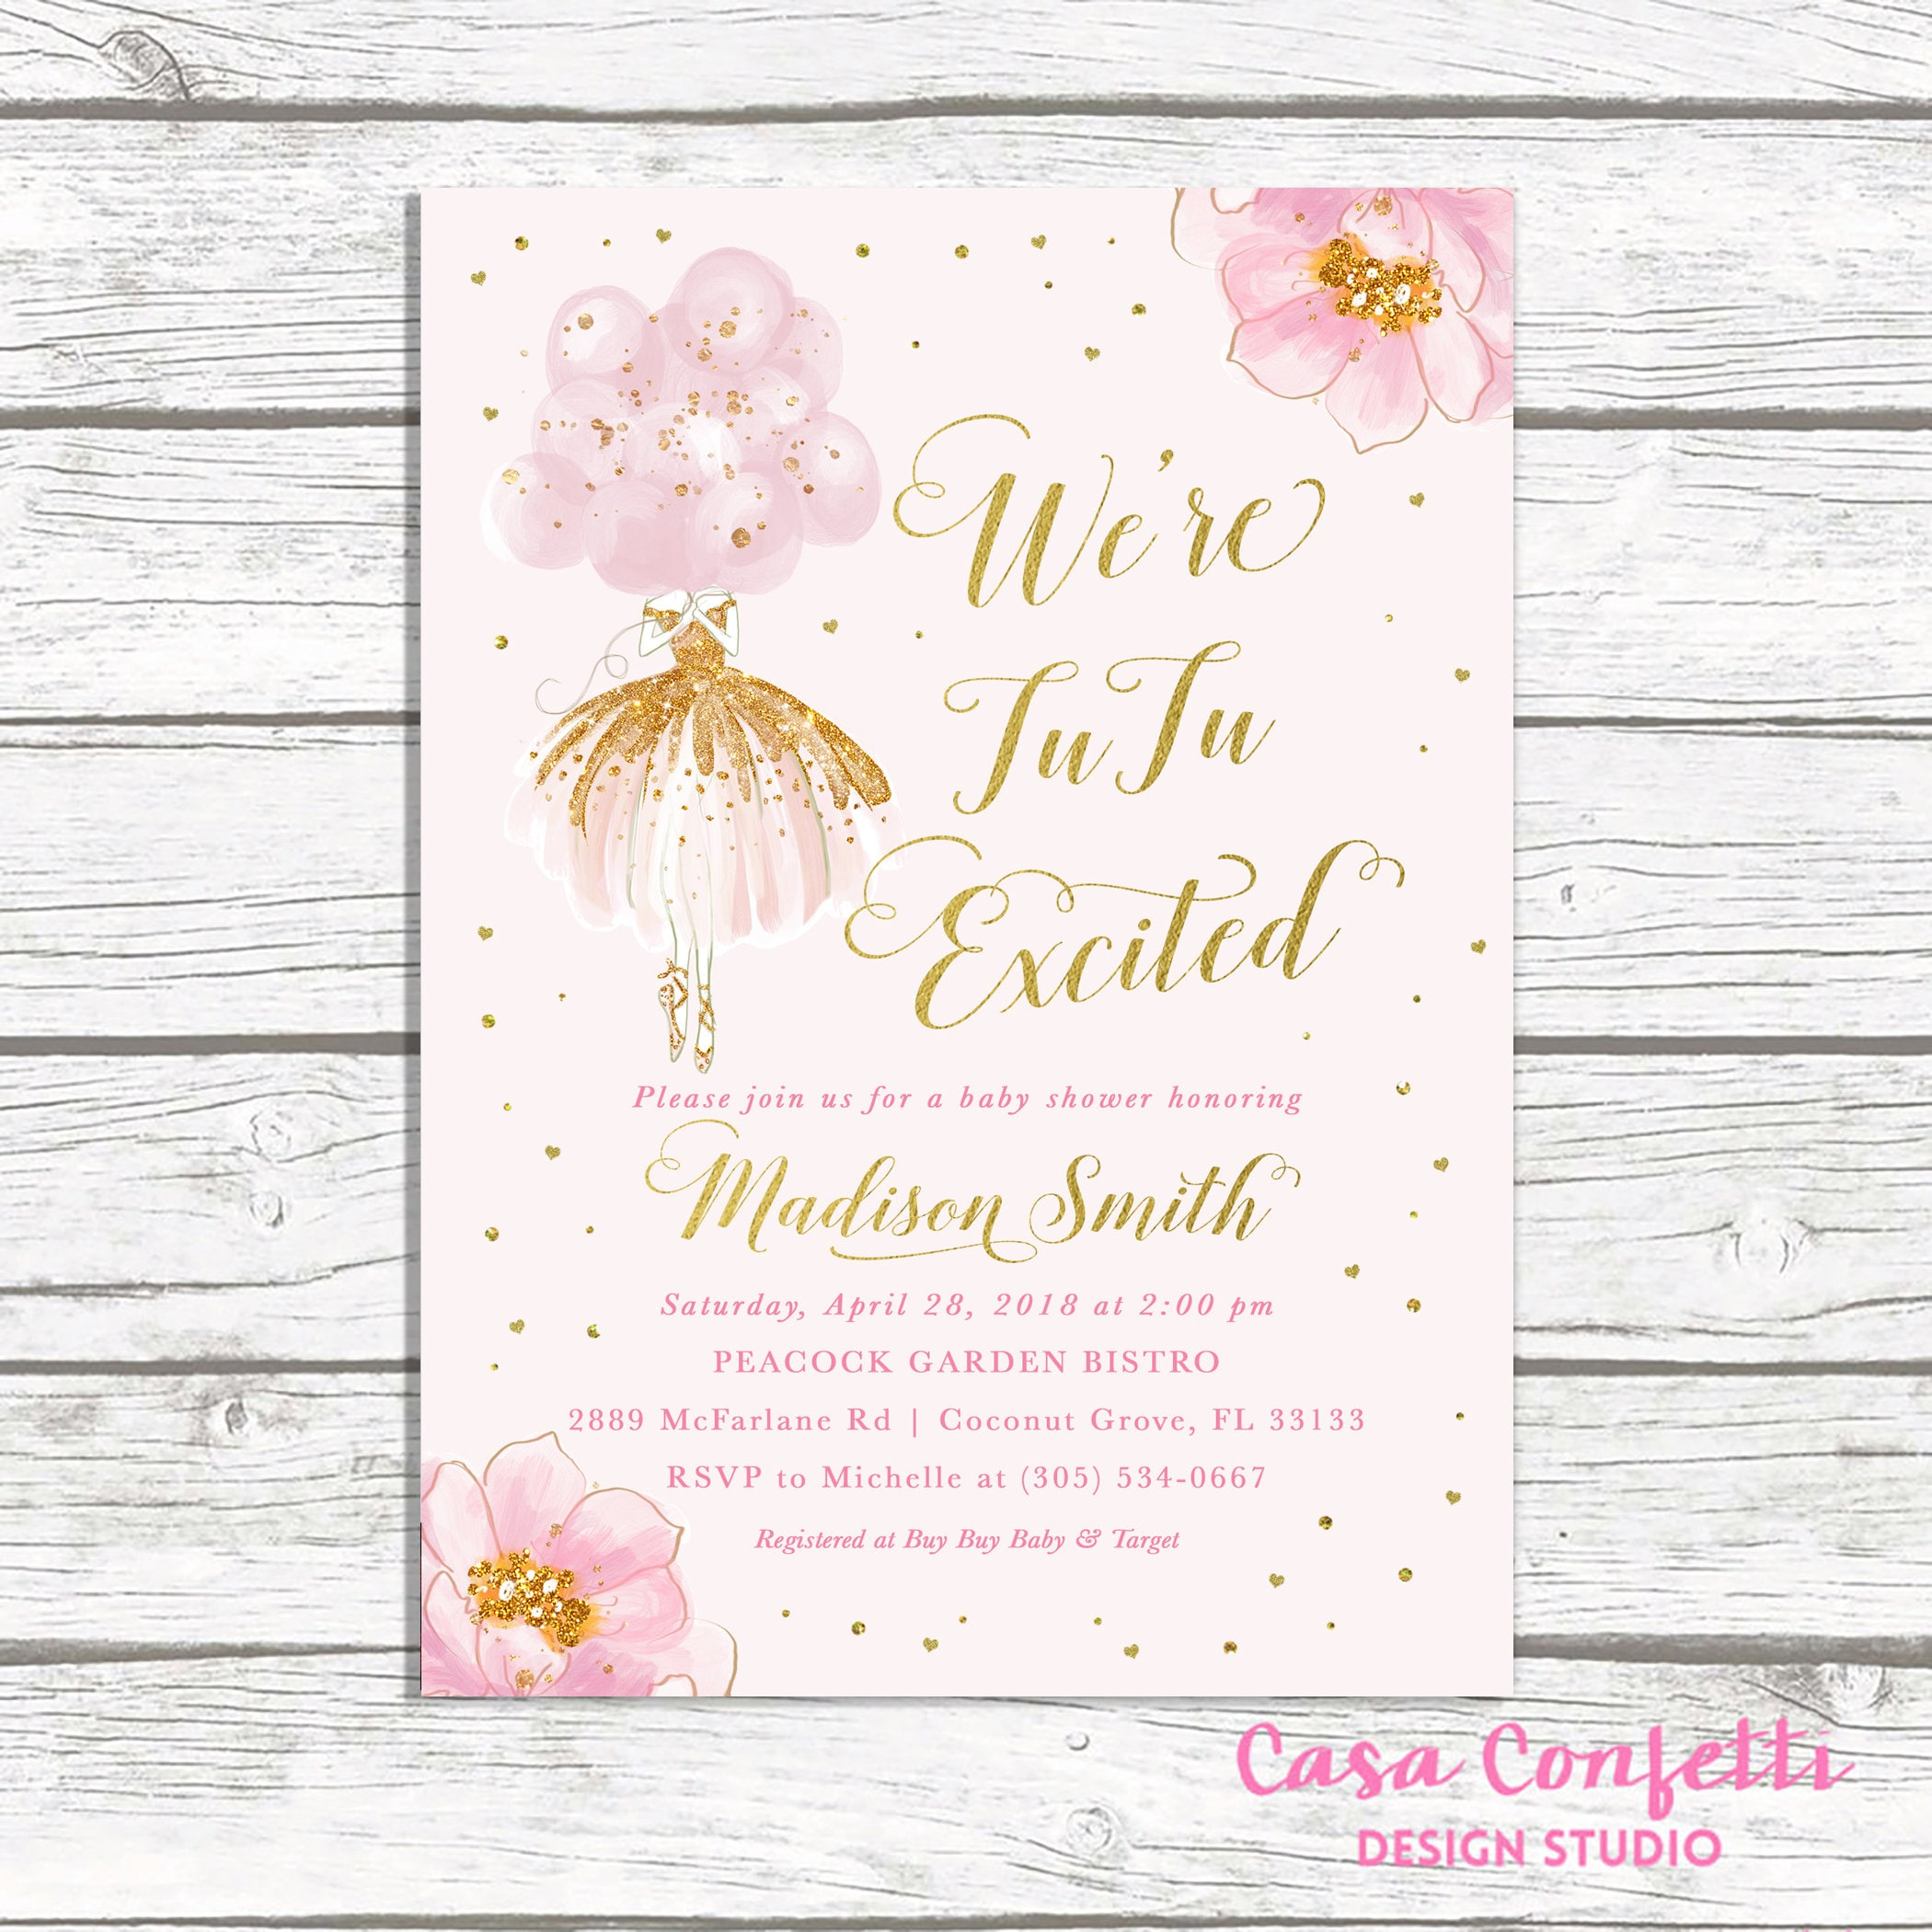 ba create design own invitation theruntime invitations showers invites your scrapbook x a style dimensions baby shower inside